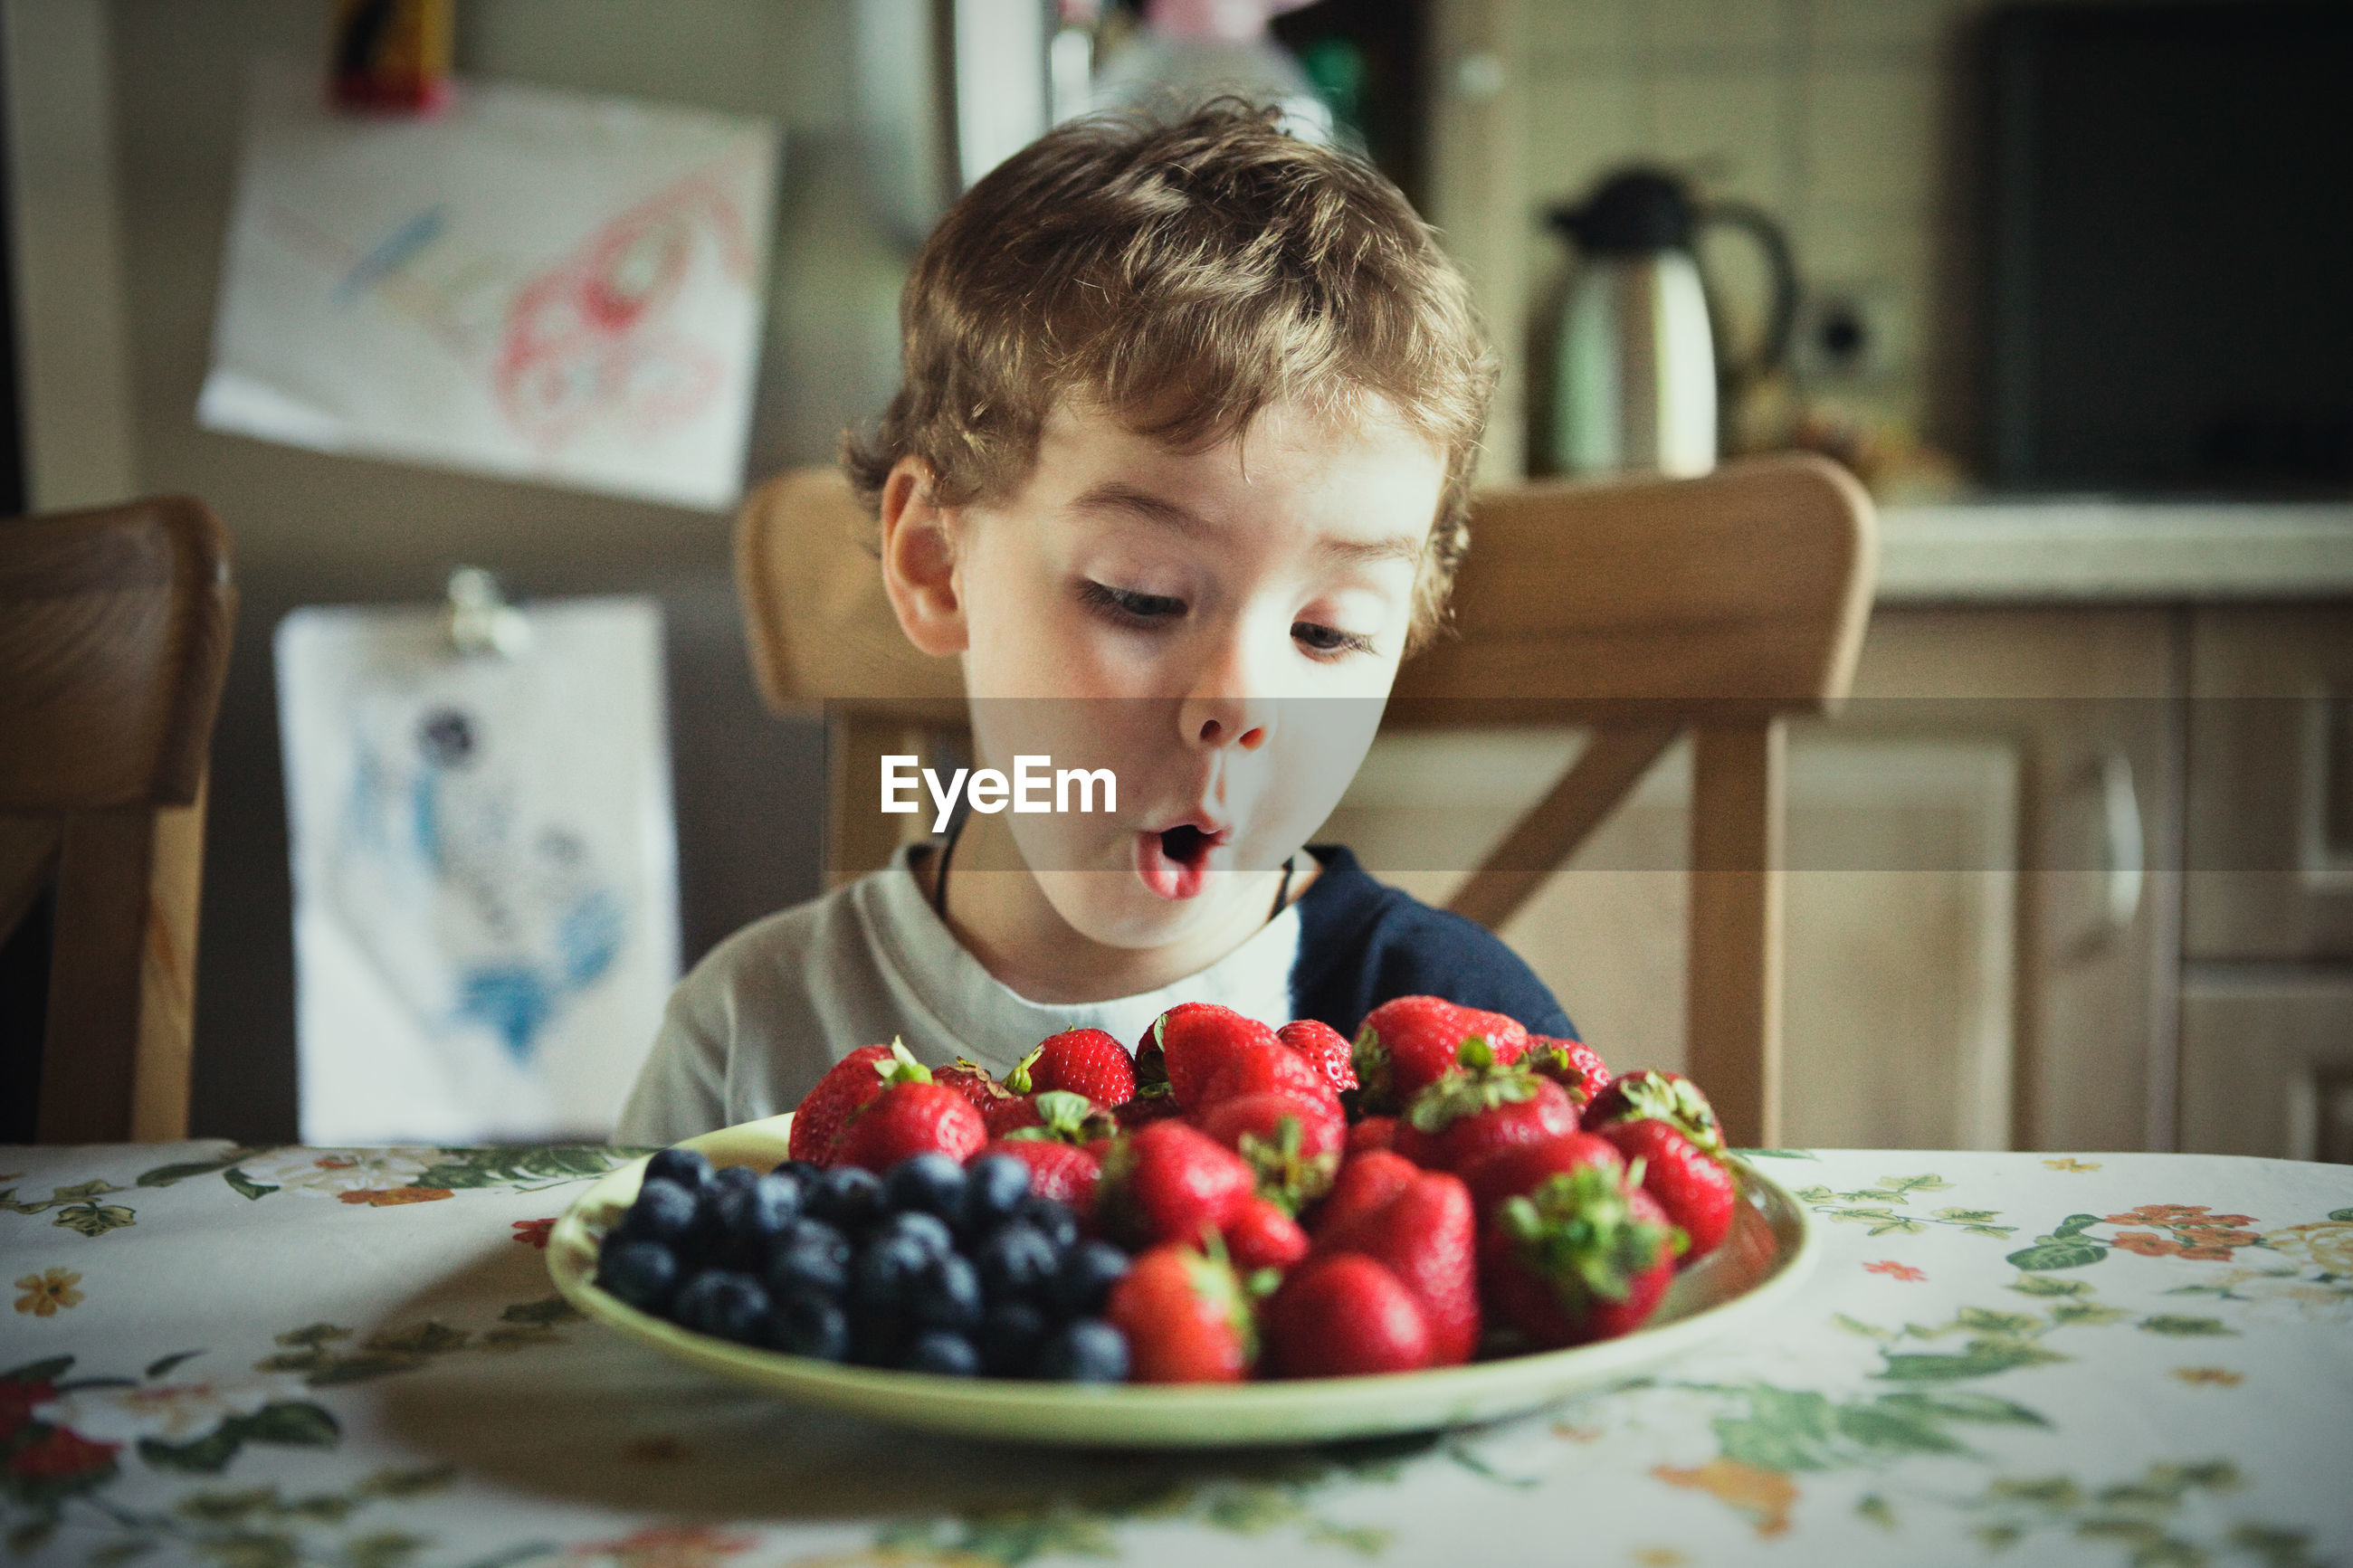 Cute boy looking at fruits in plate at table